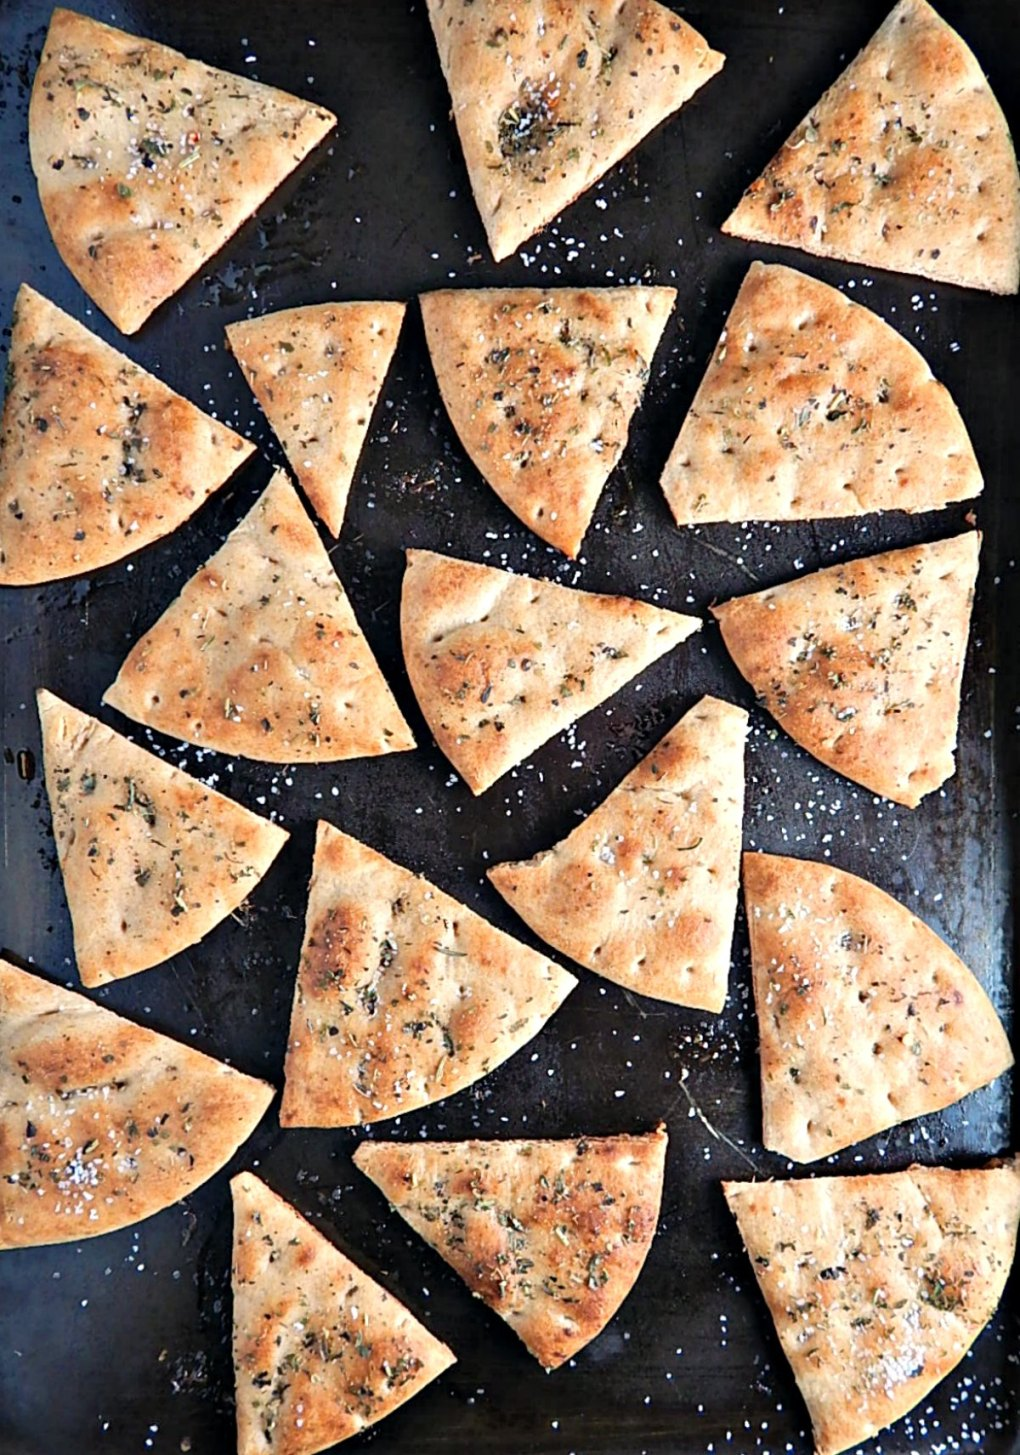 Baked Pita Chips, Herbed or Not